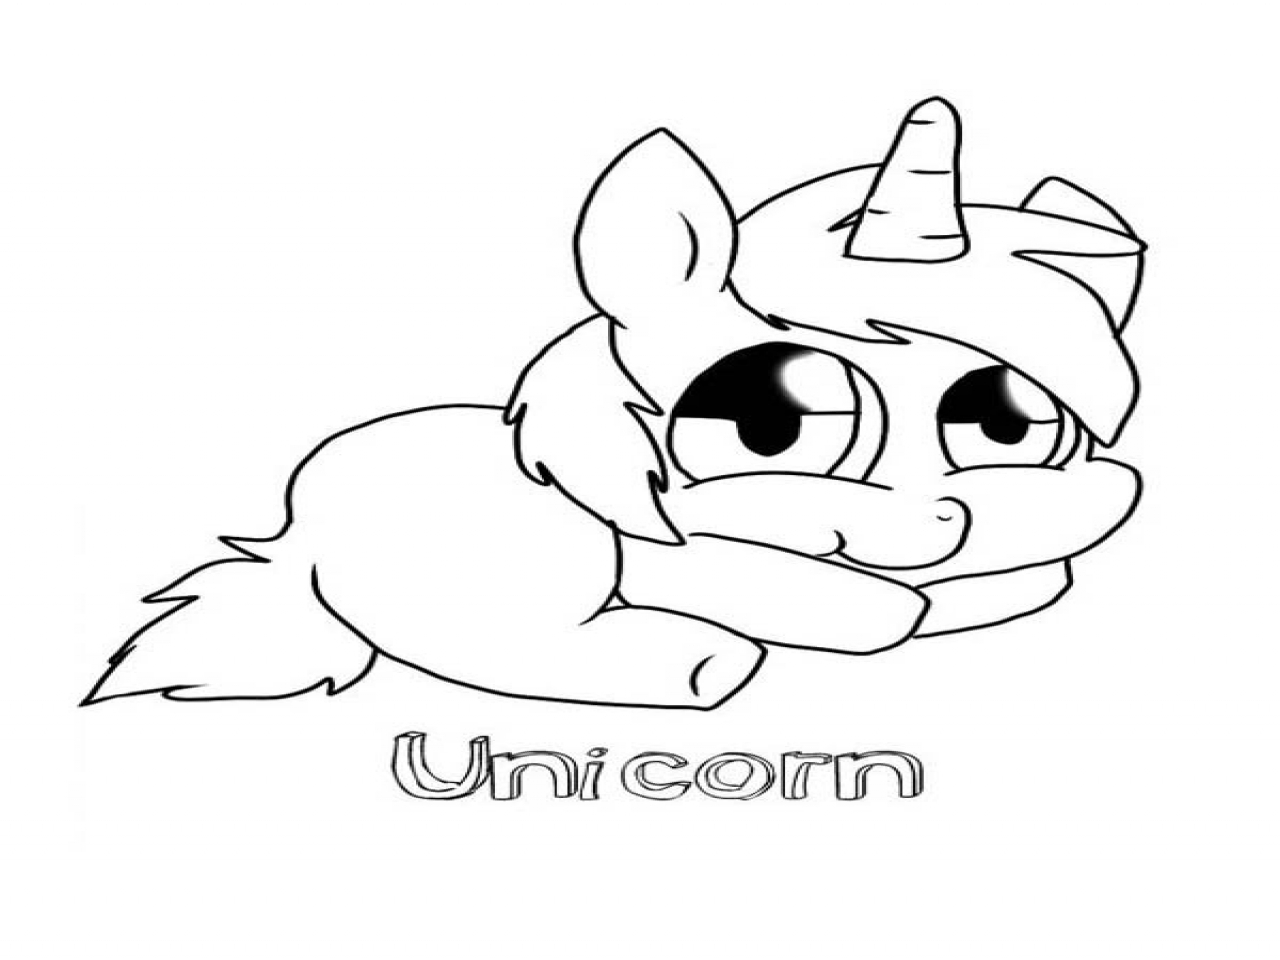 1280x960 Best Of Cute Cartoon Unicorn Coloring Pages Design Printable